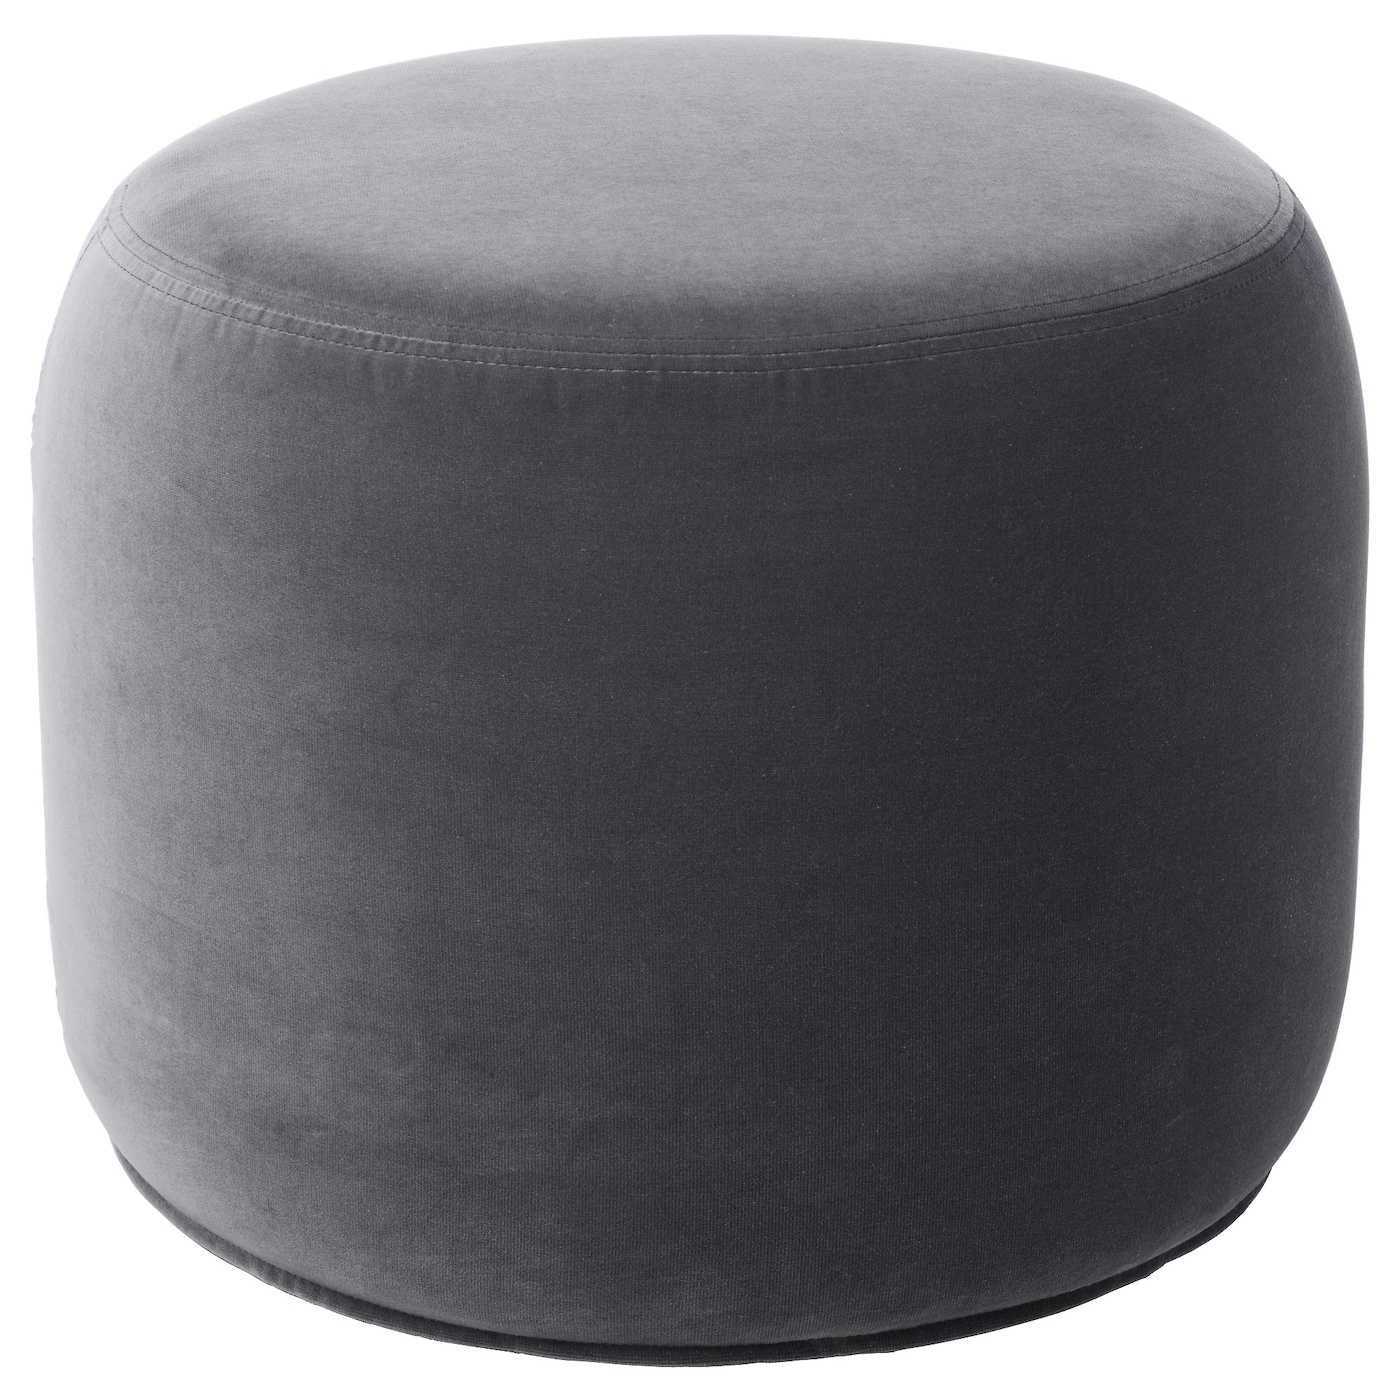 IKEA STOCKHOLM 2017 pouffe Easy to move thanks to its small size.